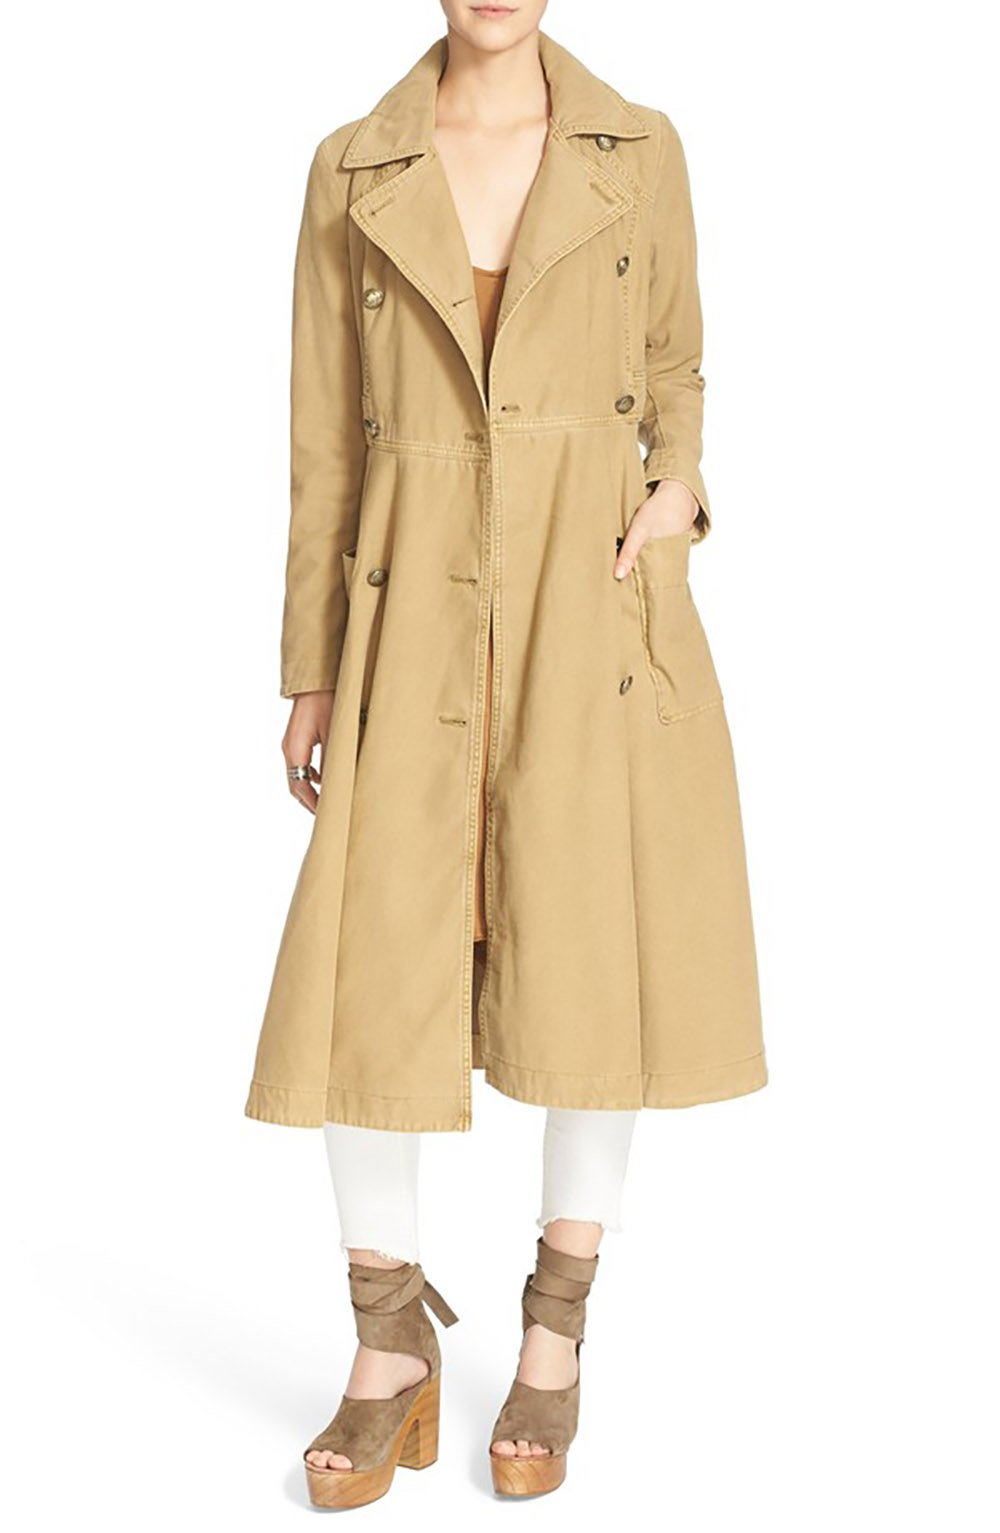 Free People Women's 'Full Sweep' Cotton Trench Coat (Small, Beige) by Free People